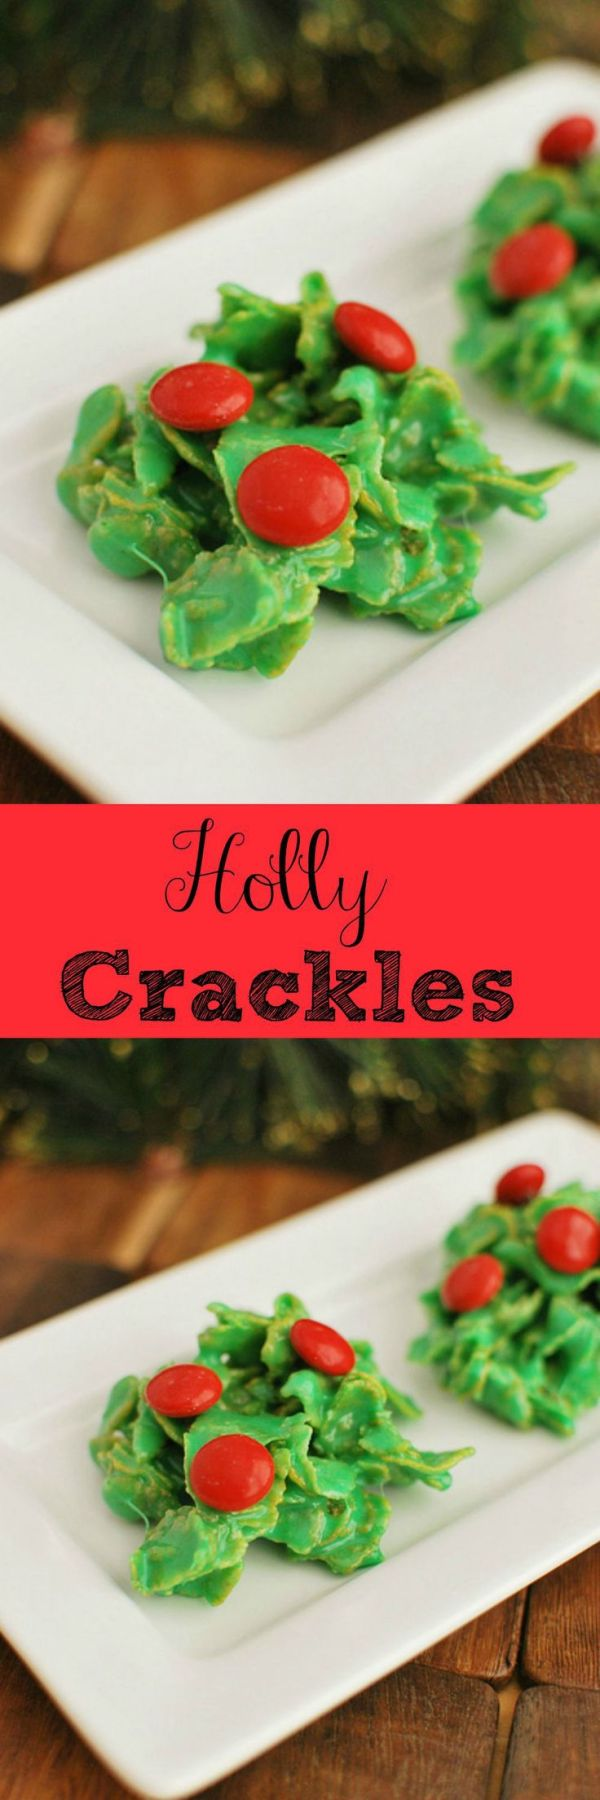 Top 489 ideas about Christmas Recipes and Crafts on